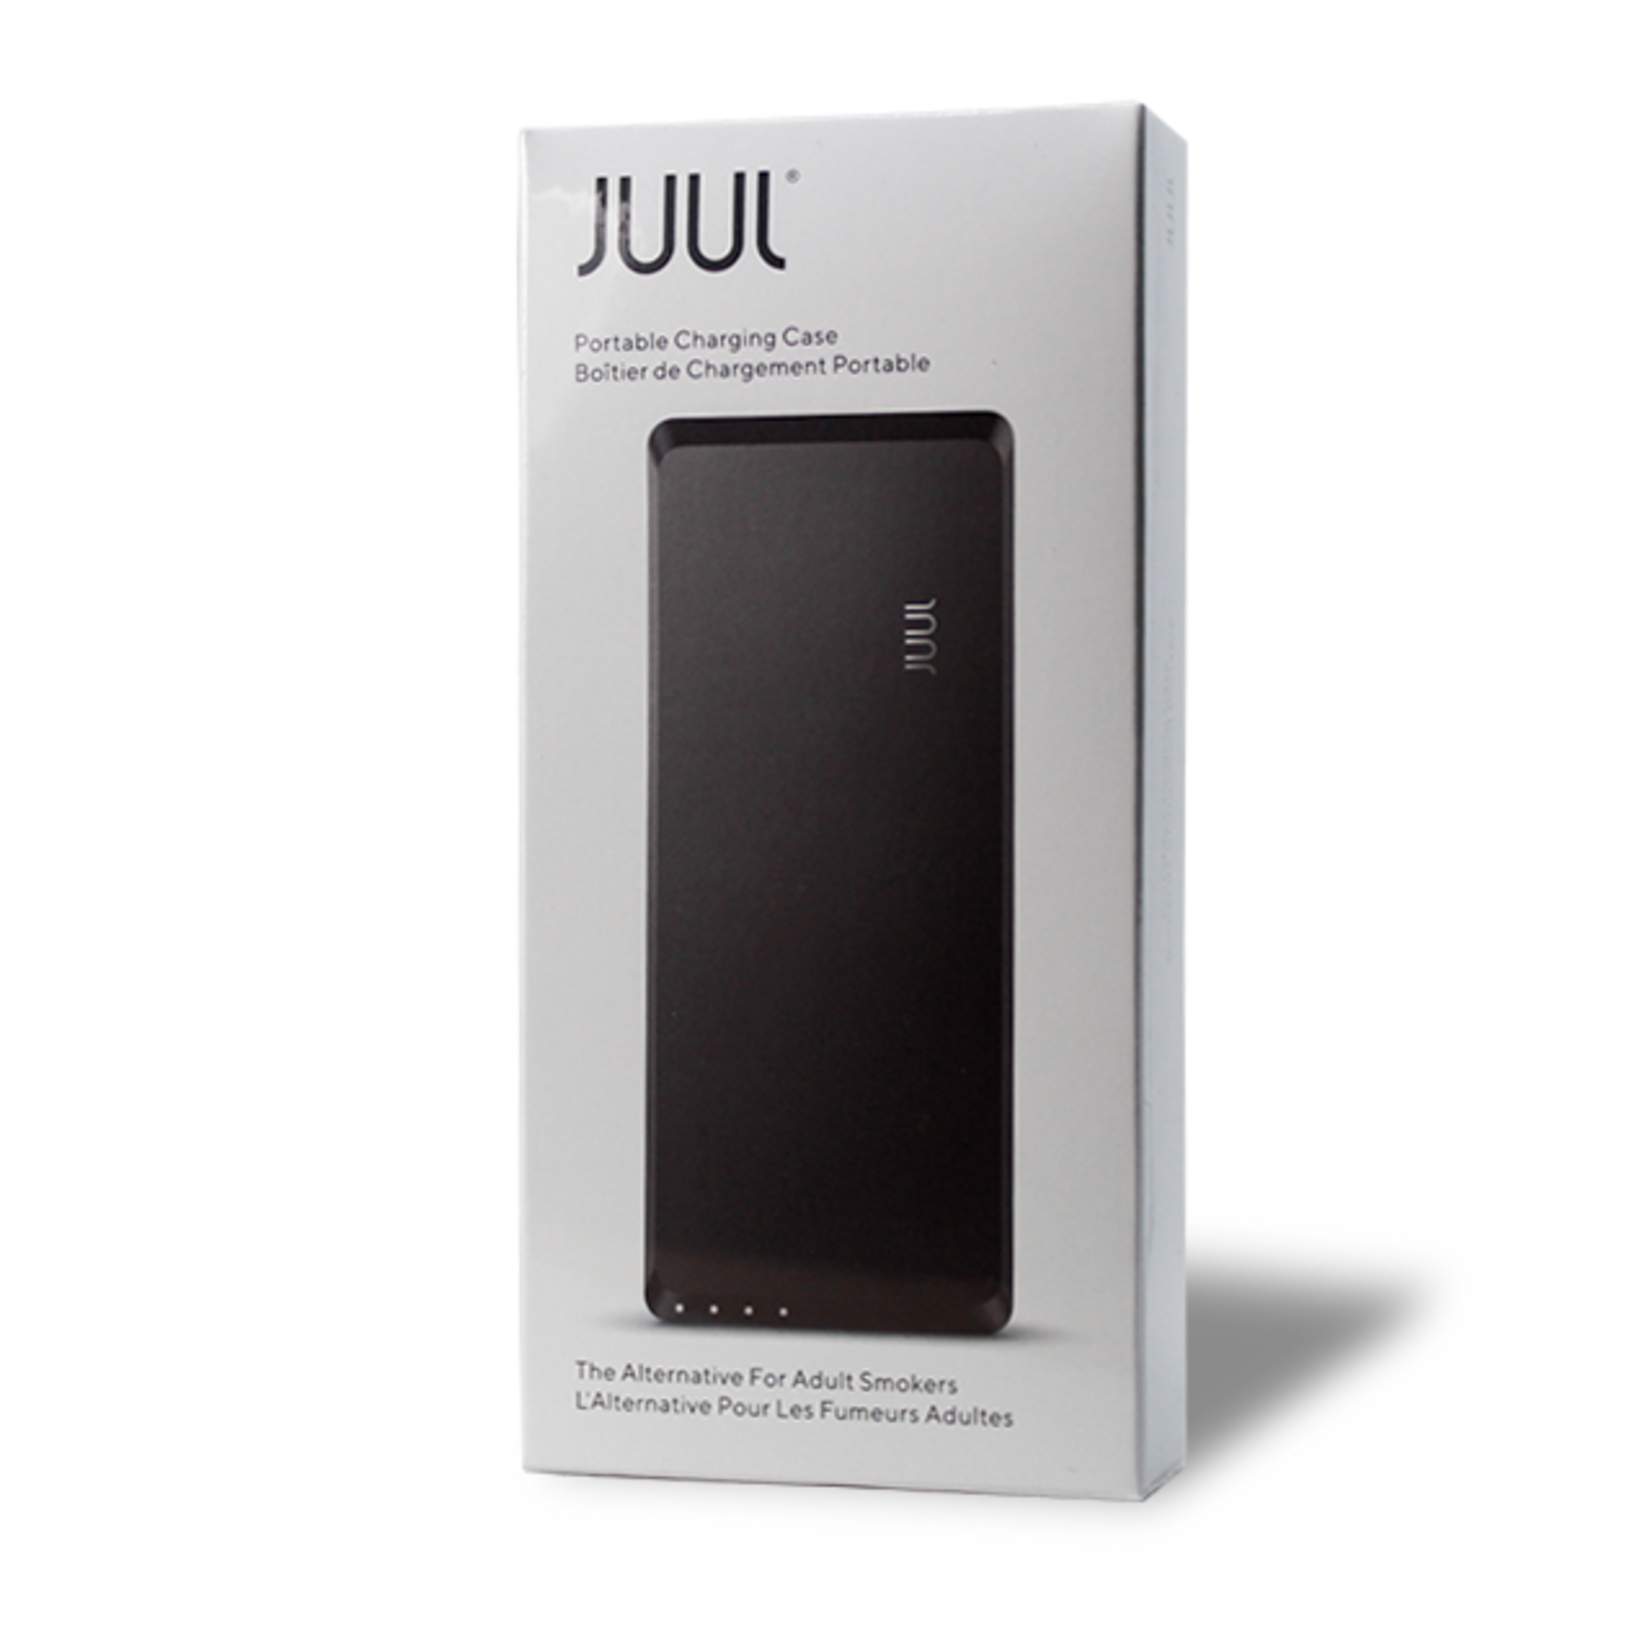 JUUL Portable Charging Case